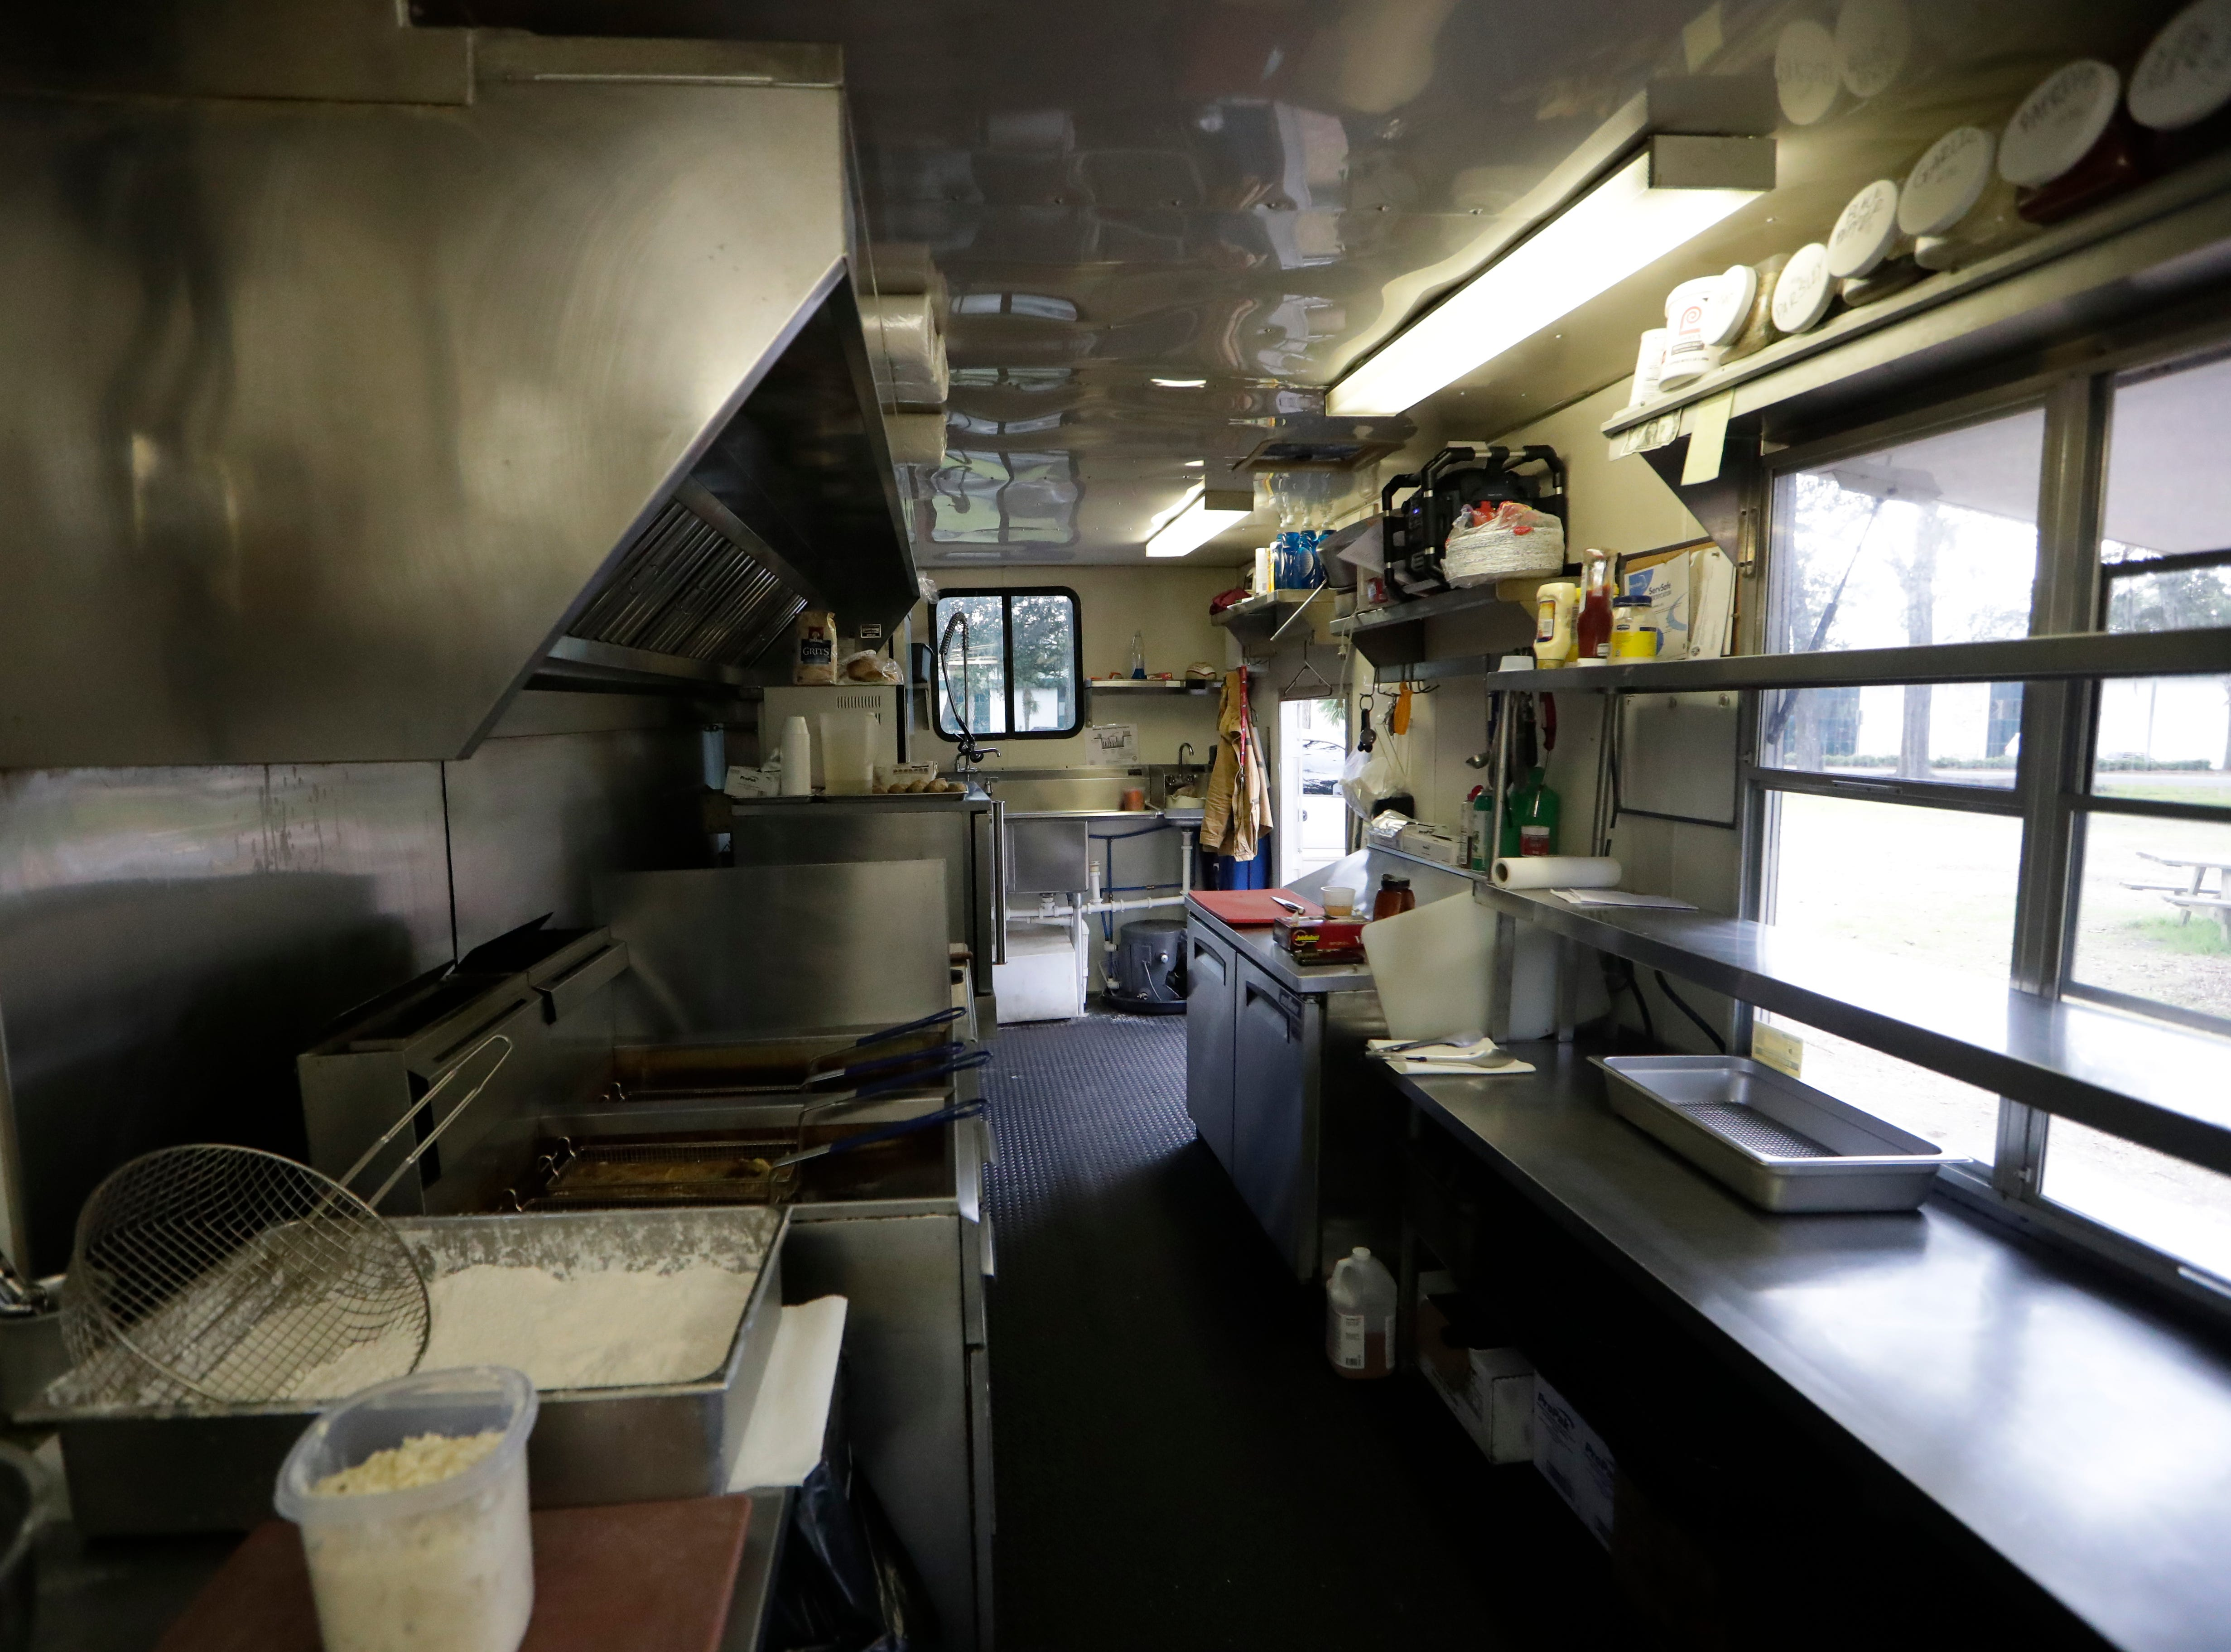 The interior of the Spring Creek Restaurant food truck located in Crawfordville, Fla., Friday, Feb. 1, 2019.